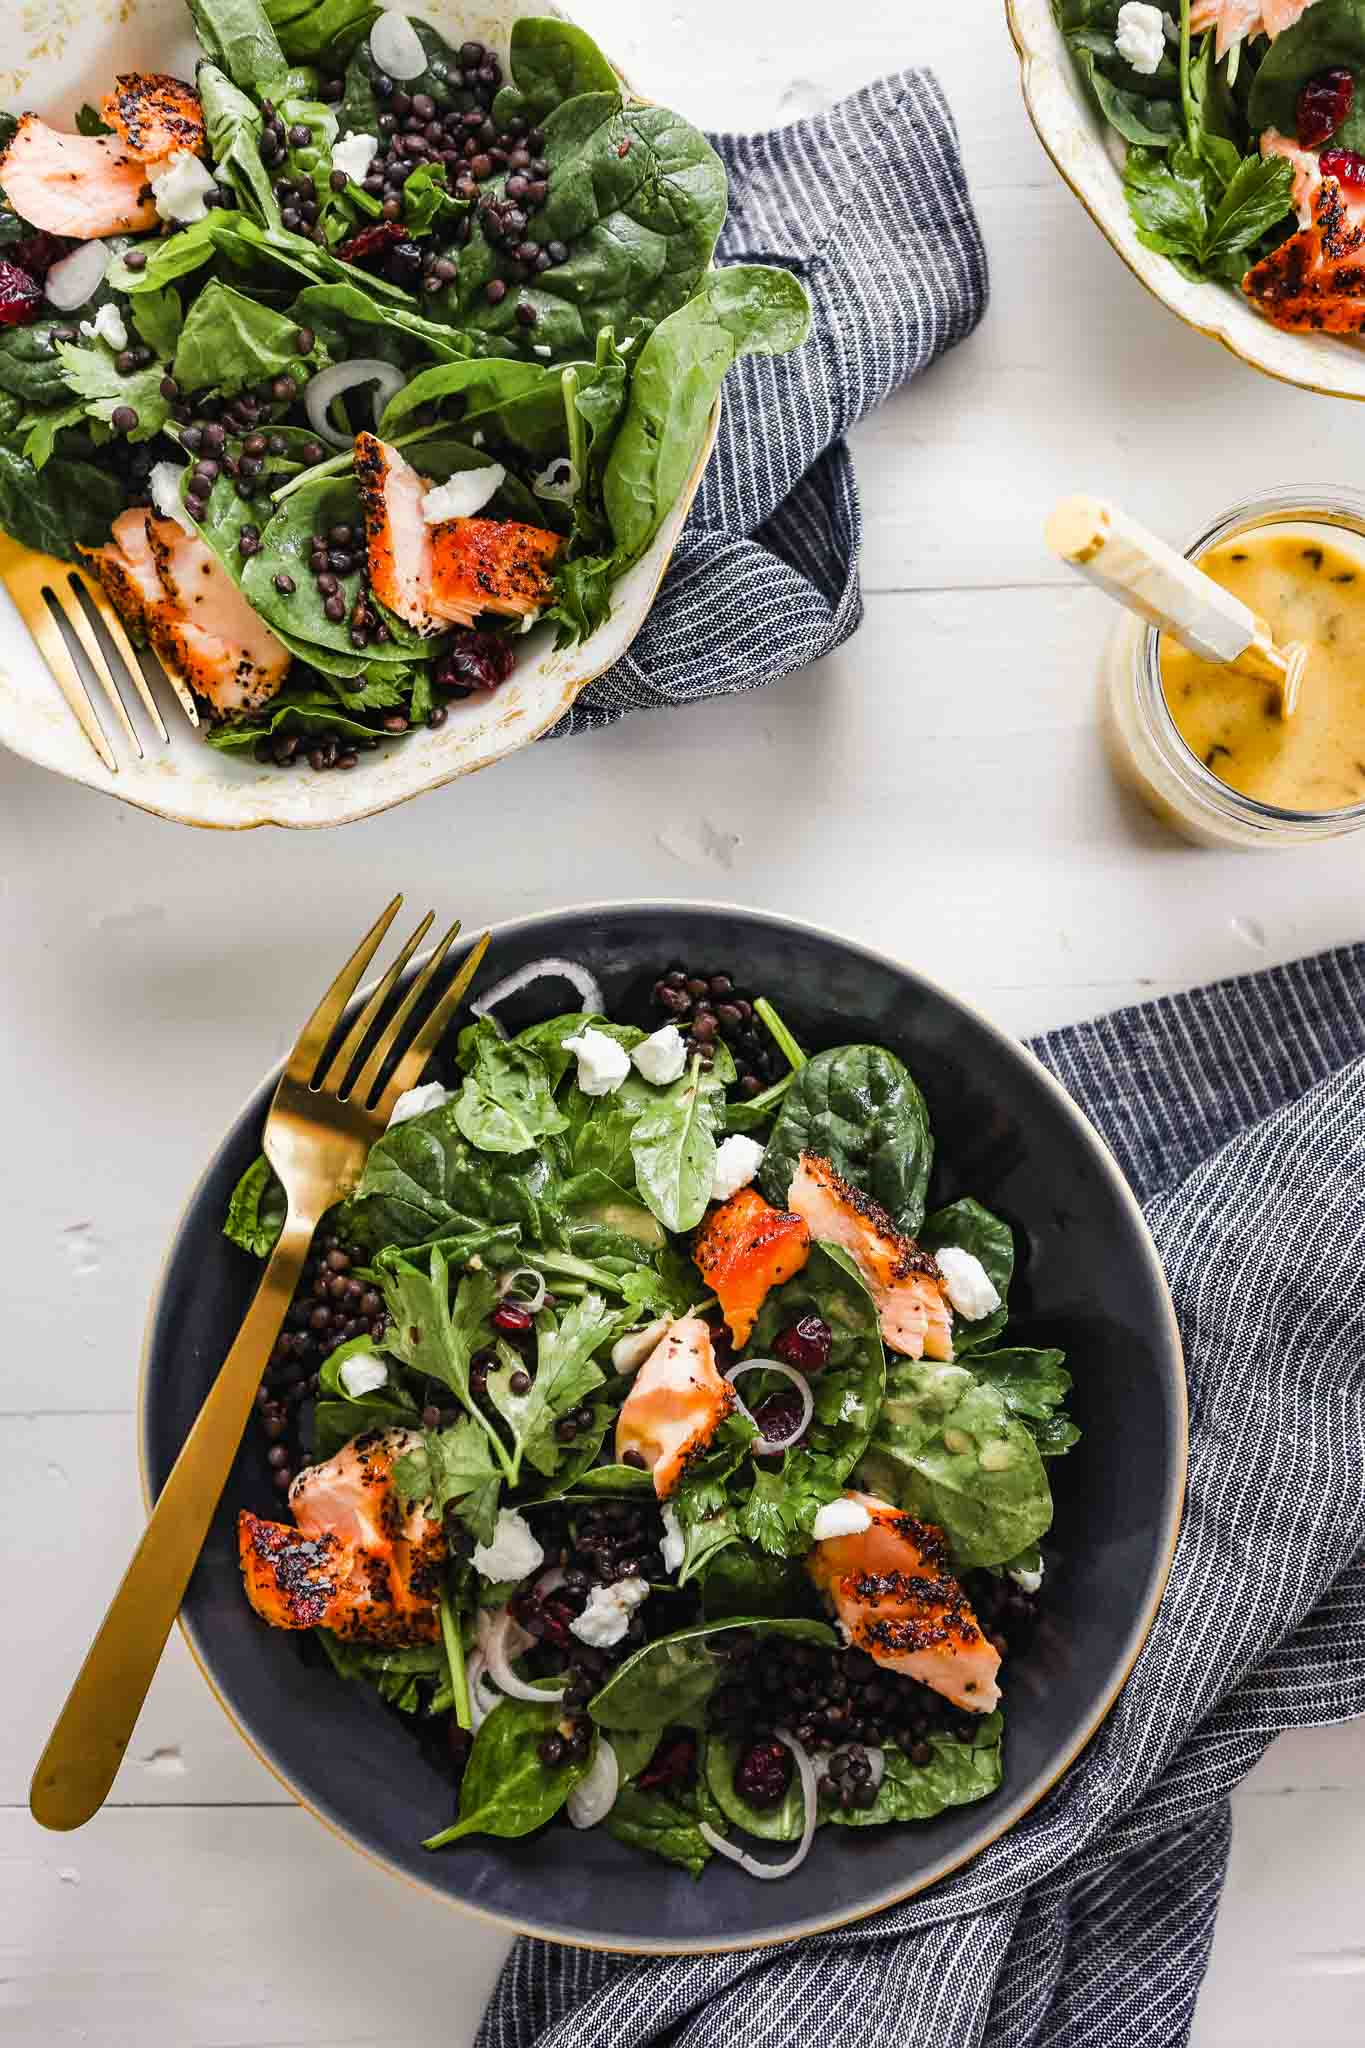 Overhead photograph of lentil and spinach salad with flakes of salmon in a dark blue bowl with a gold fork. Dressing set off to the side in a bowl with a spoon.